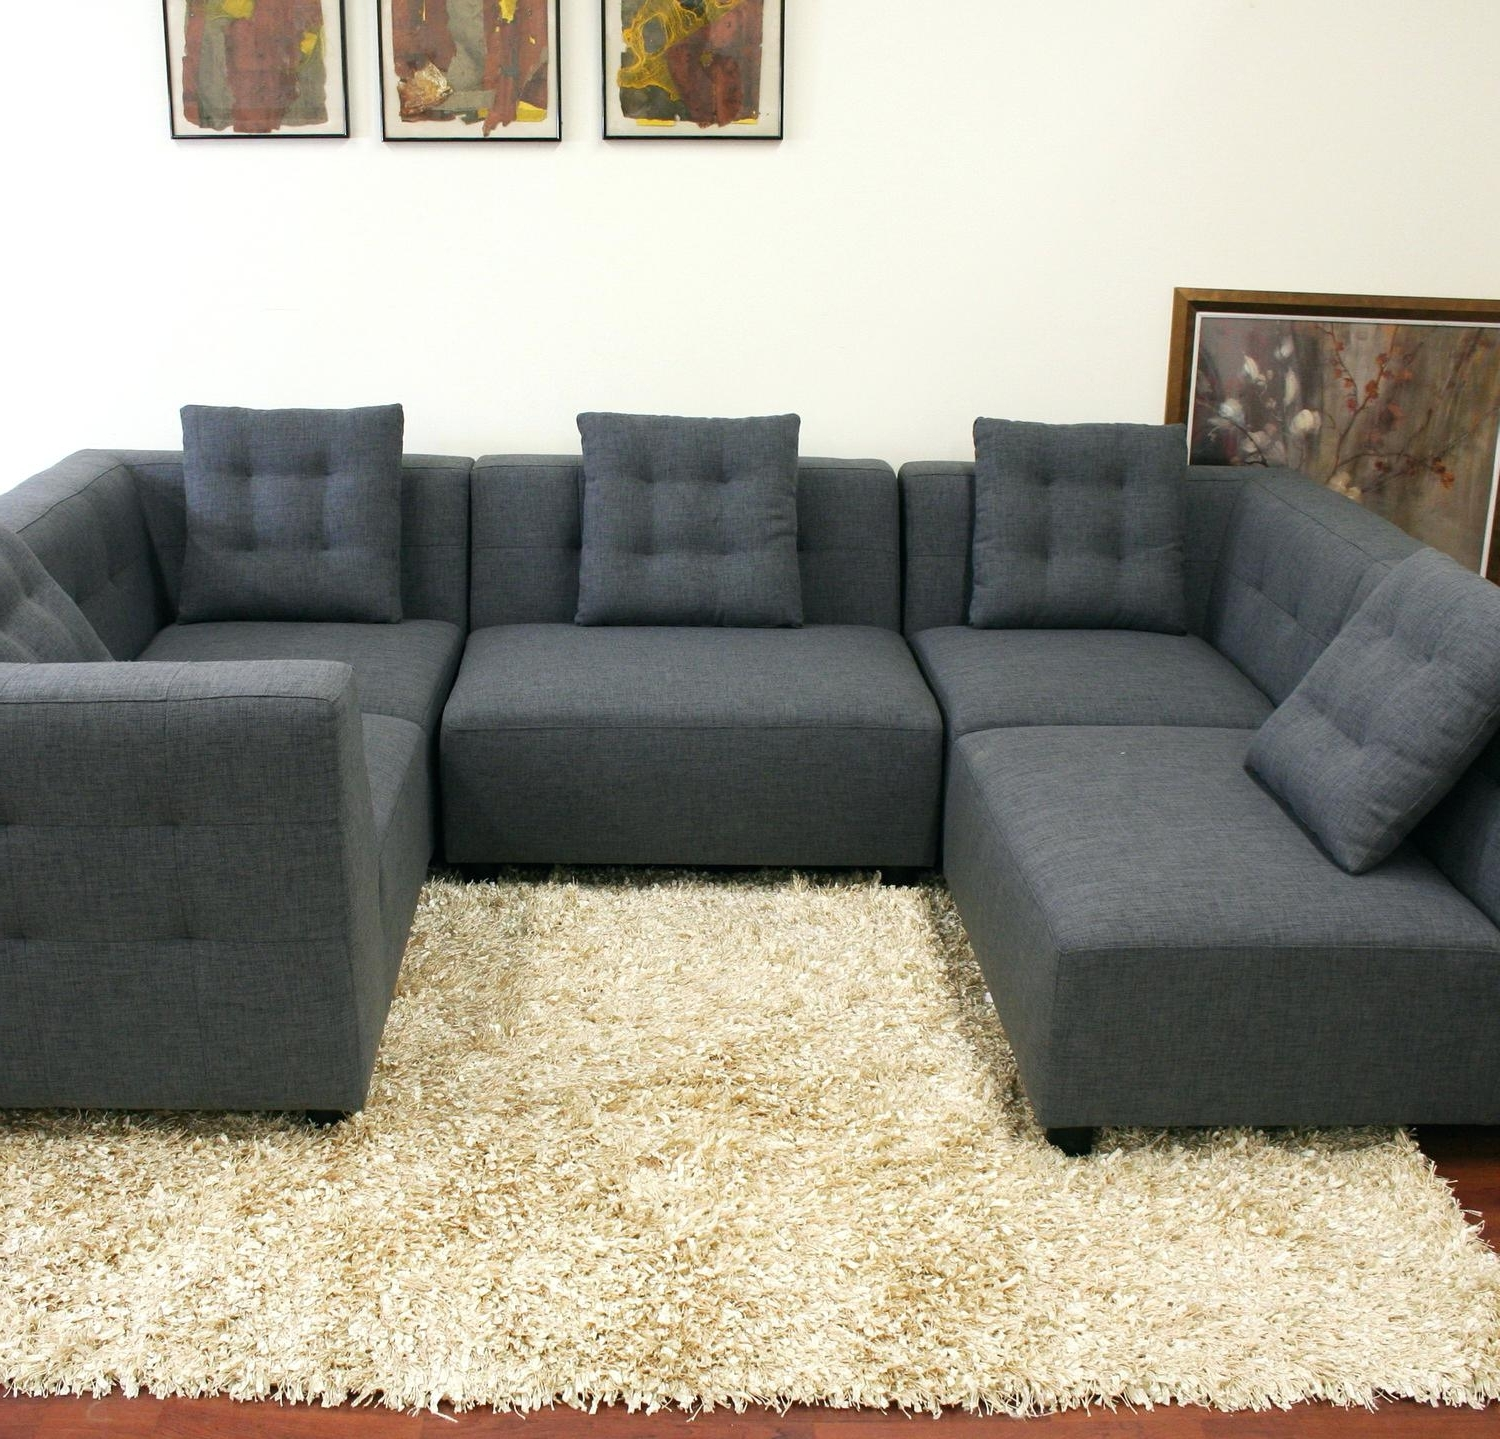 Sectional Sofas For Sale Clearance Canada Couch Ottawa Kijiji With Widely Used Kijiji Ottawa Sectional Sofas (View 12 of 15)